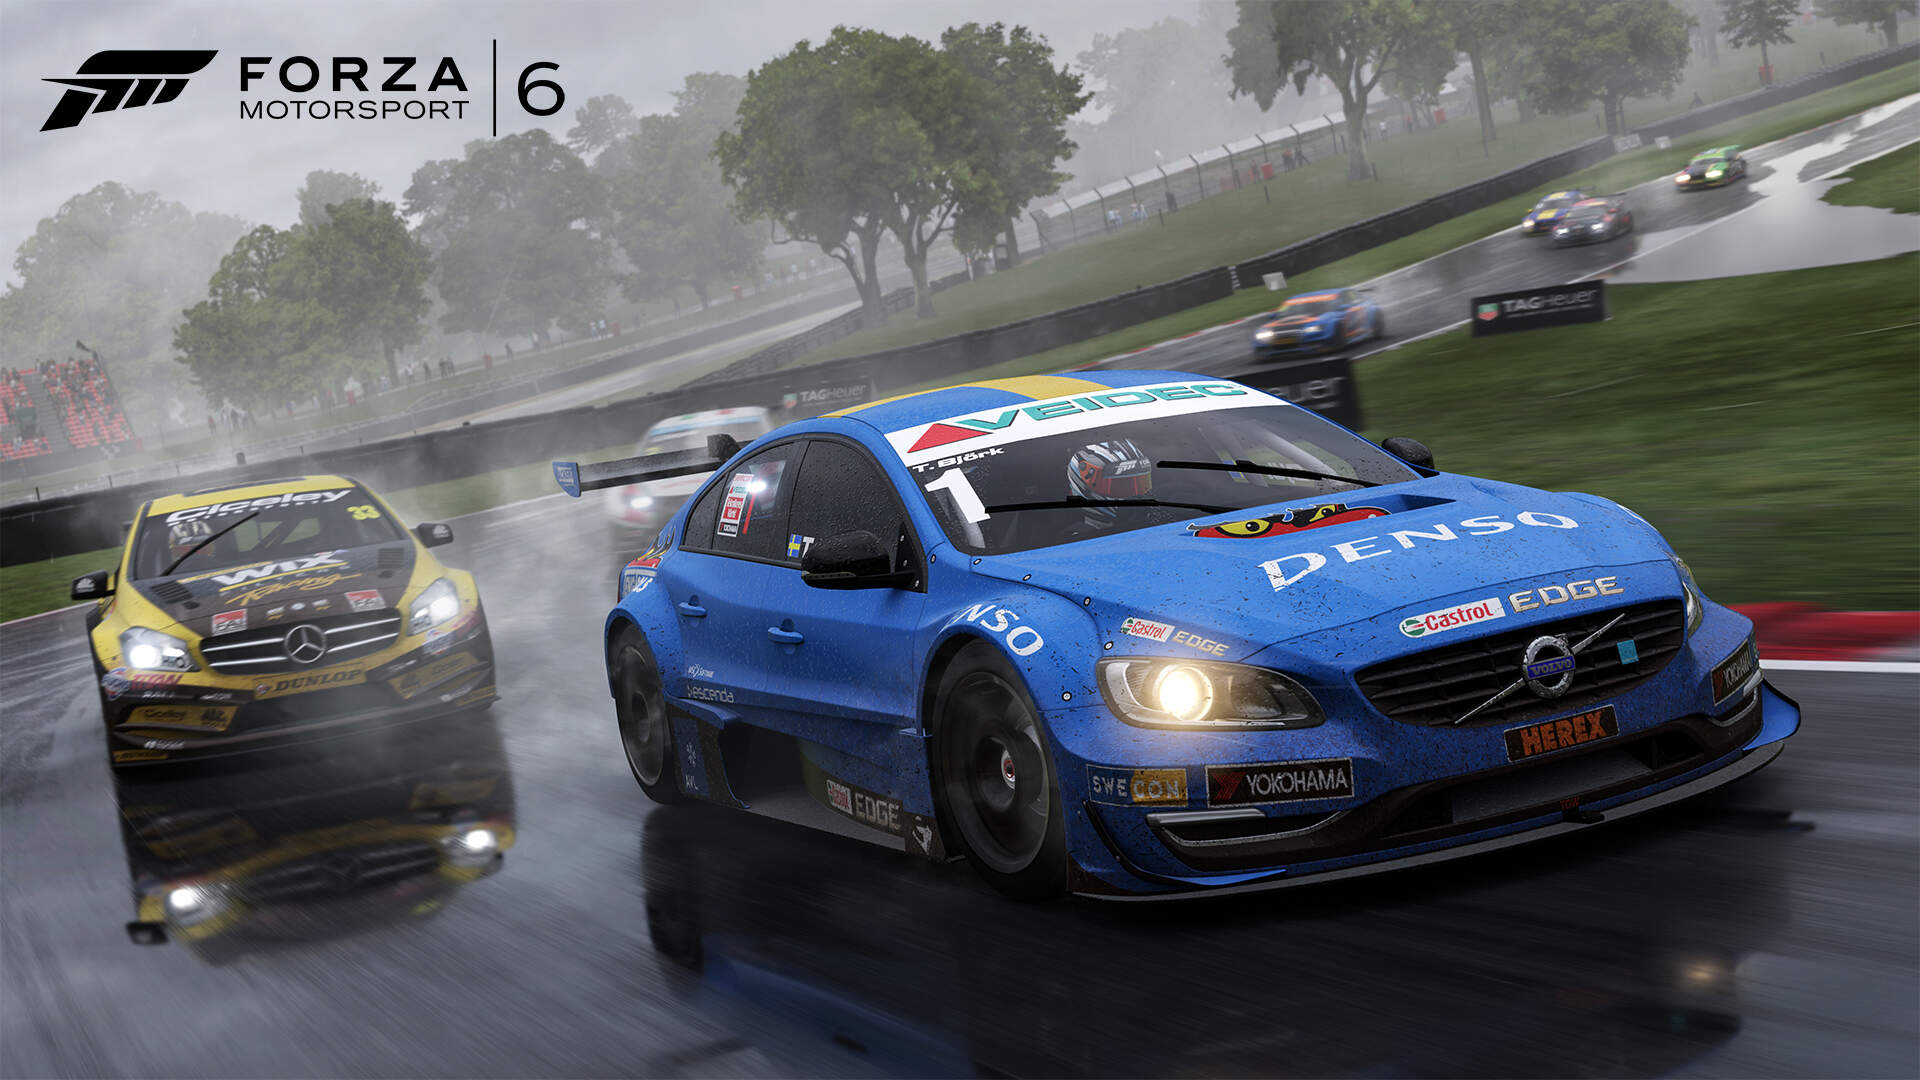 Under the Hood of Forza 6 with Bill Giese